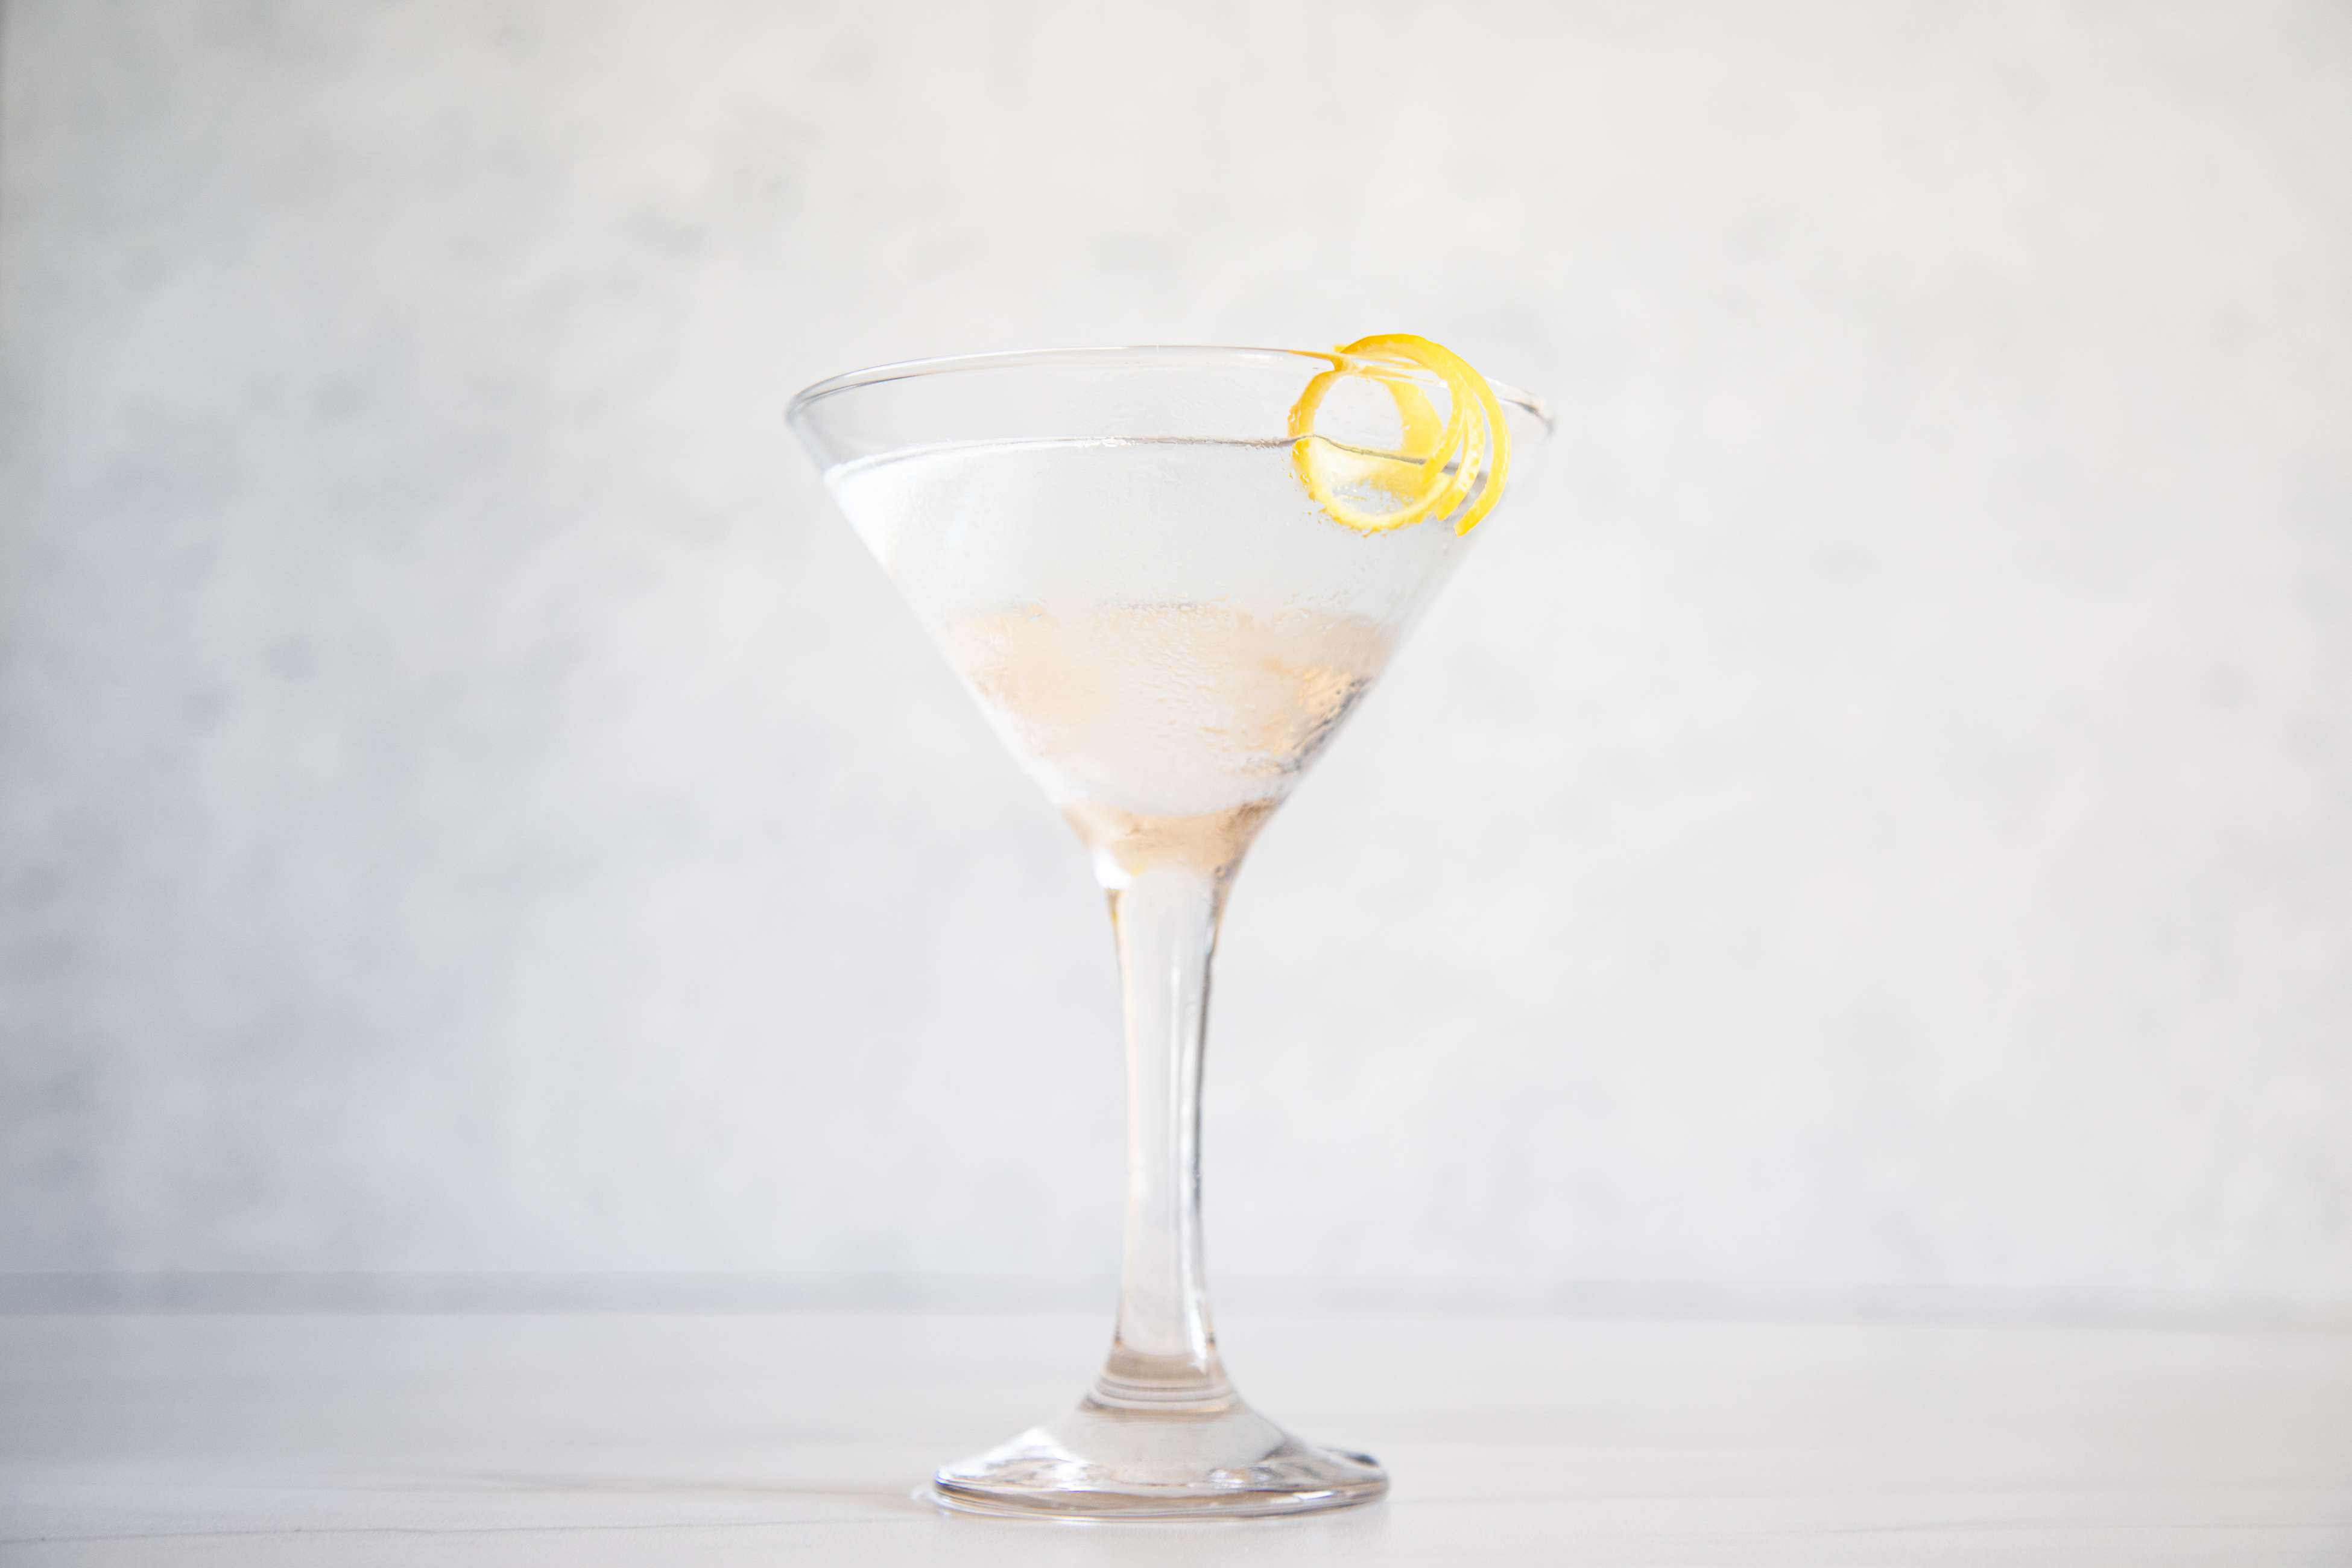 The 50/50 is the Perfect Martini